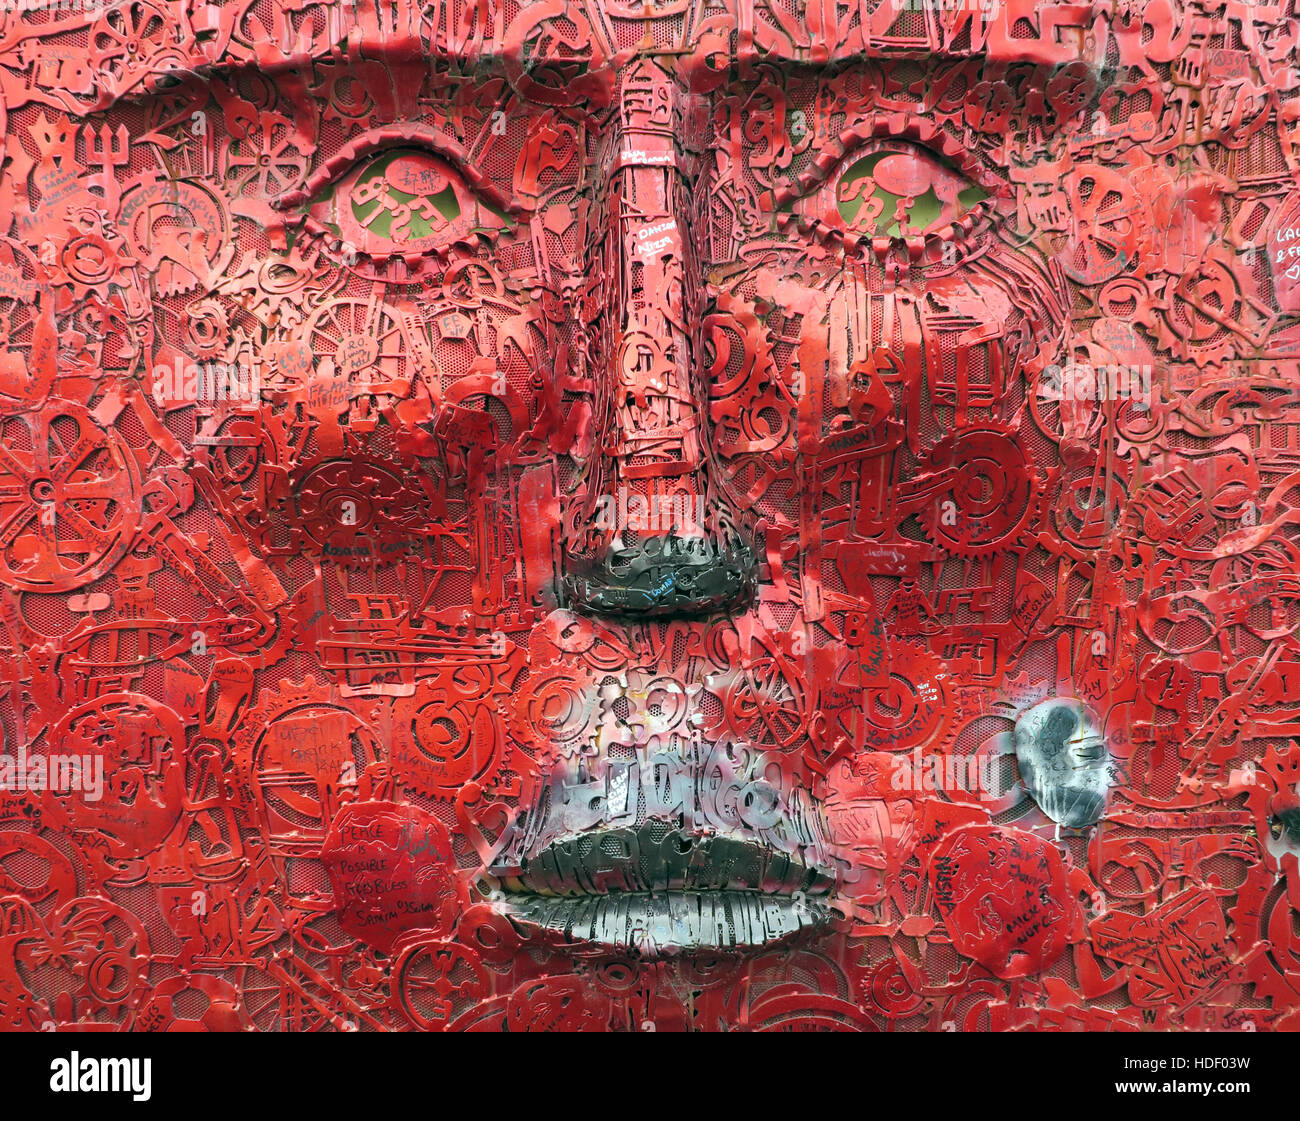 "The Face by artist Kevin Killen, is part of the ""If Walls Could Talk"" project,West Belfast,Northern Ireland, UK - Stock Image"